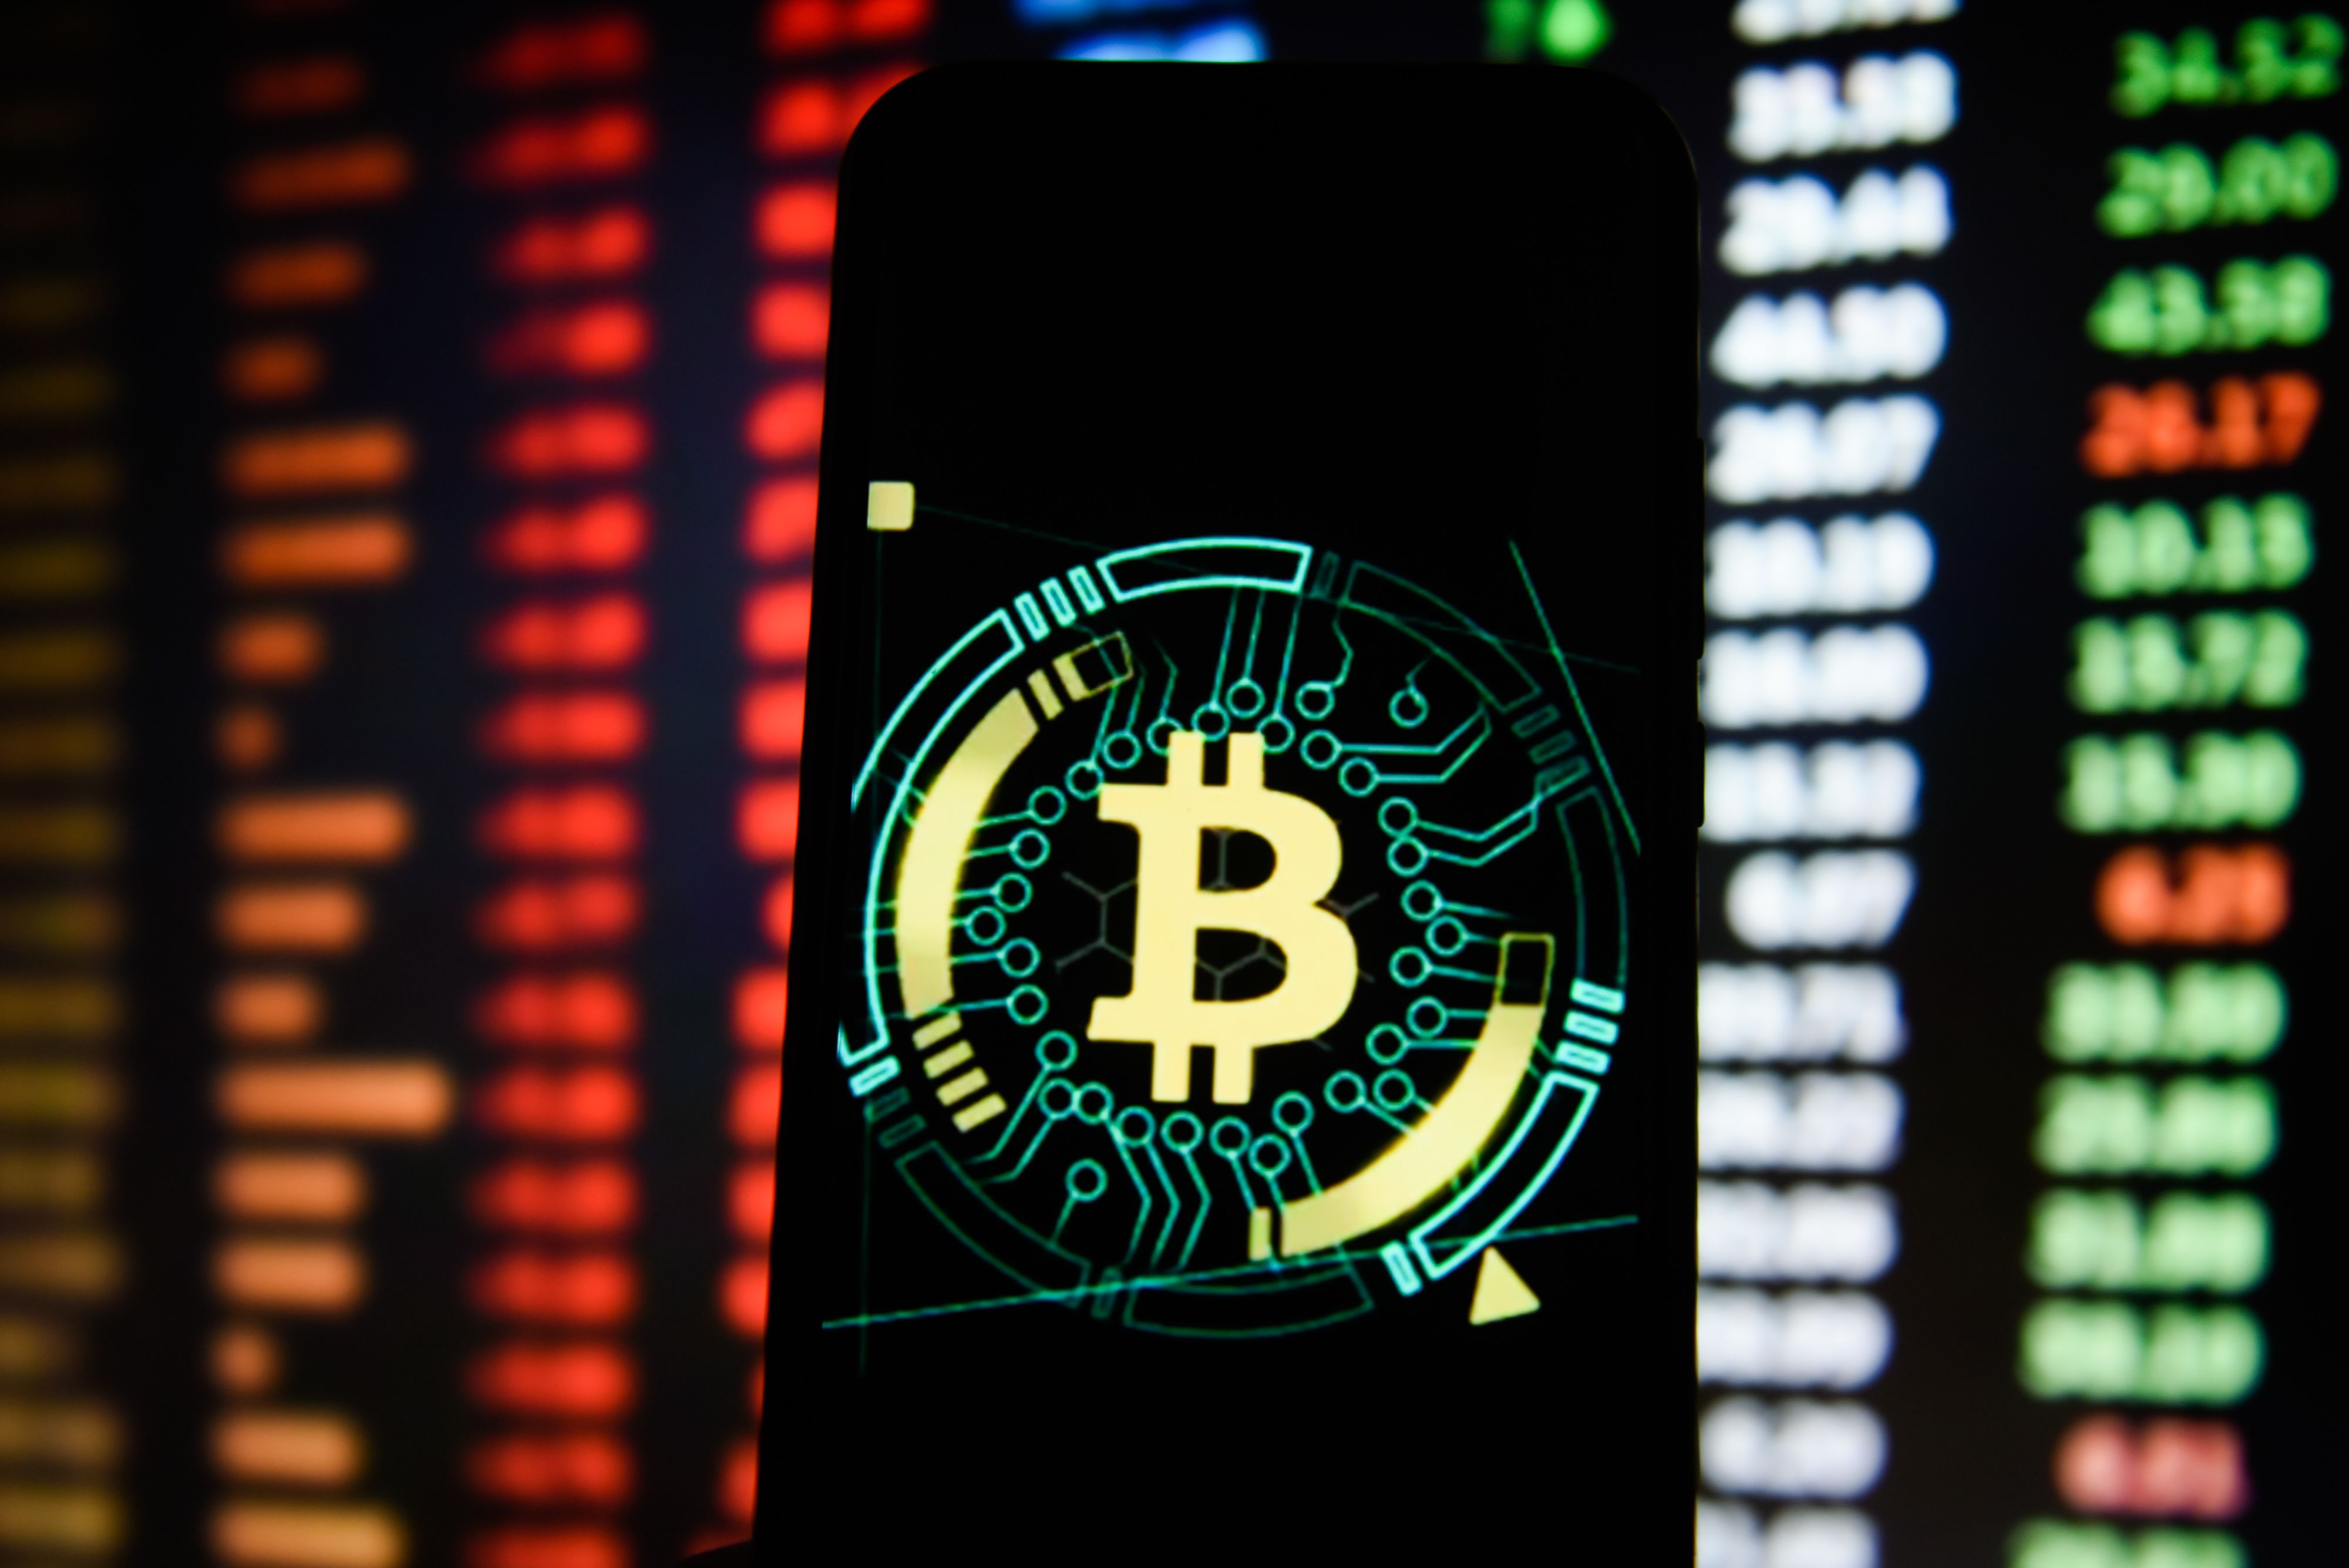 Bitcoin emerges as the big winner this month in the financial markets, soaring nearly 70%